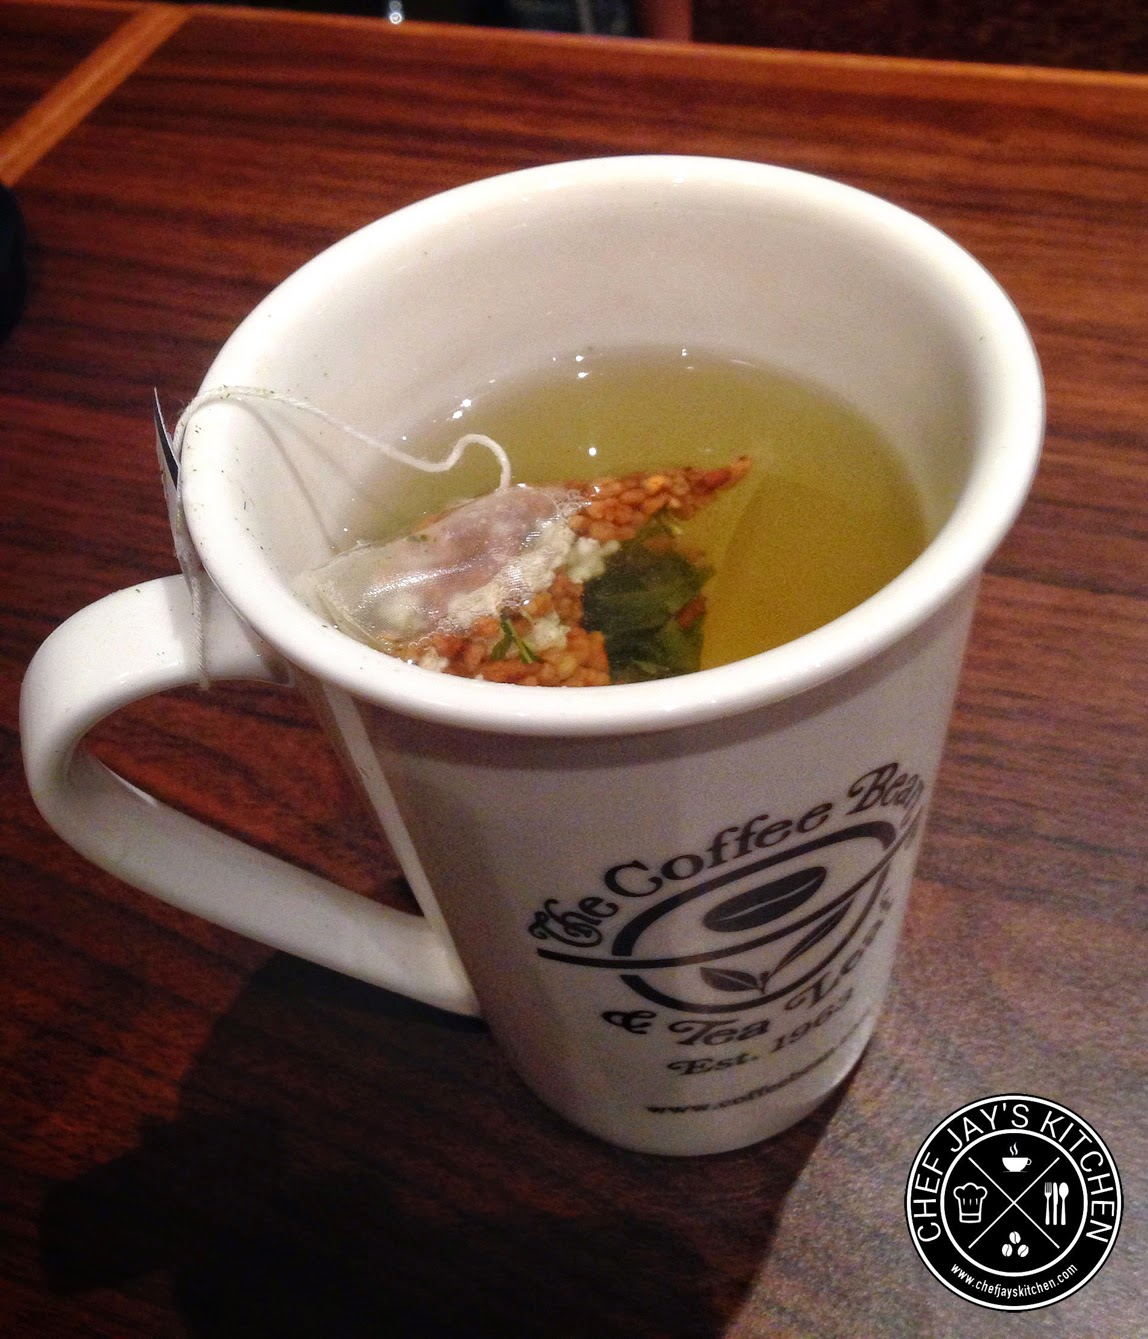 The Coffee Bean & Tea Leaf - CBTL Genmaitcha Green Tea